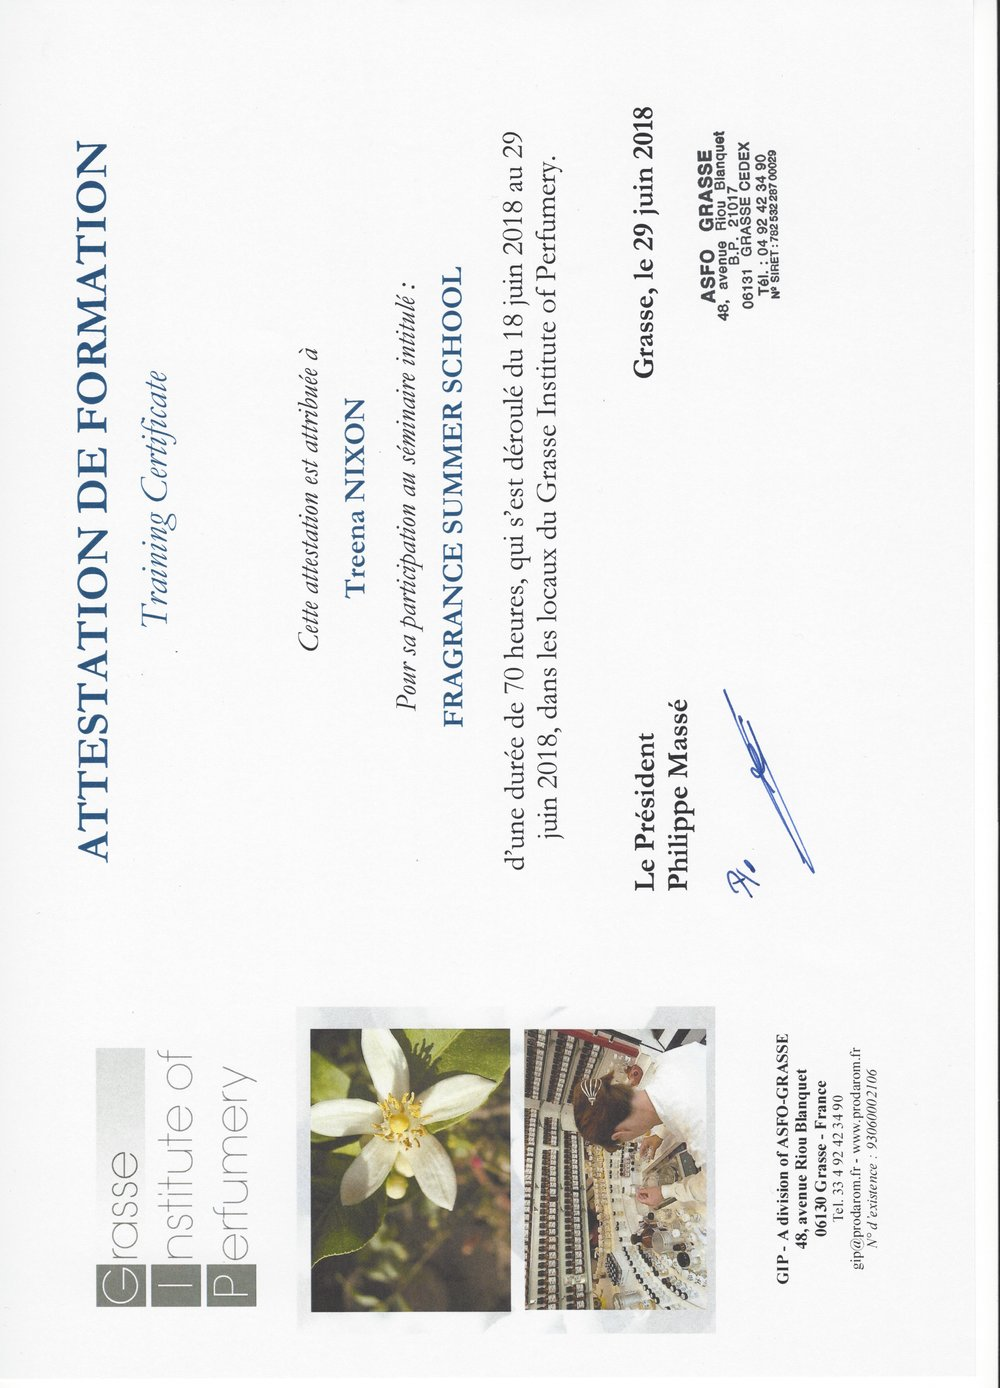 Grasse Institute of Perfumery Certification